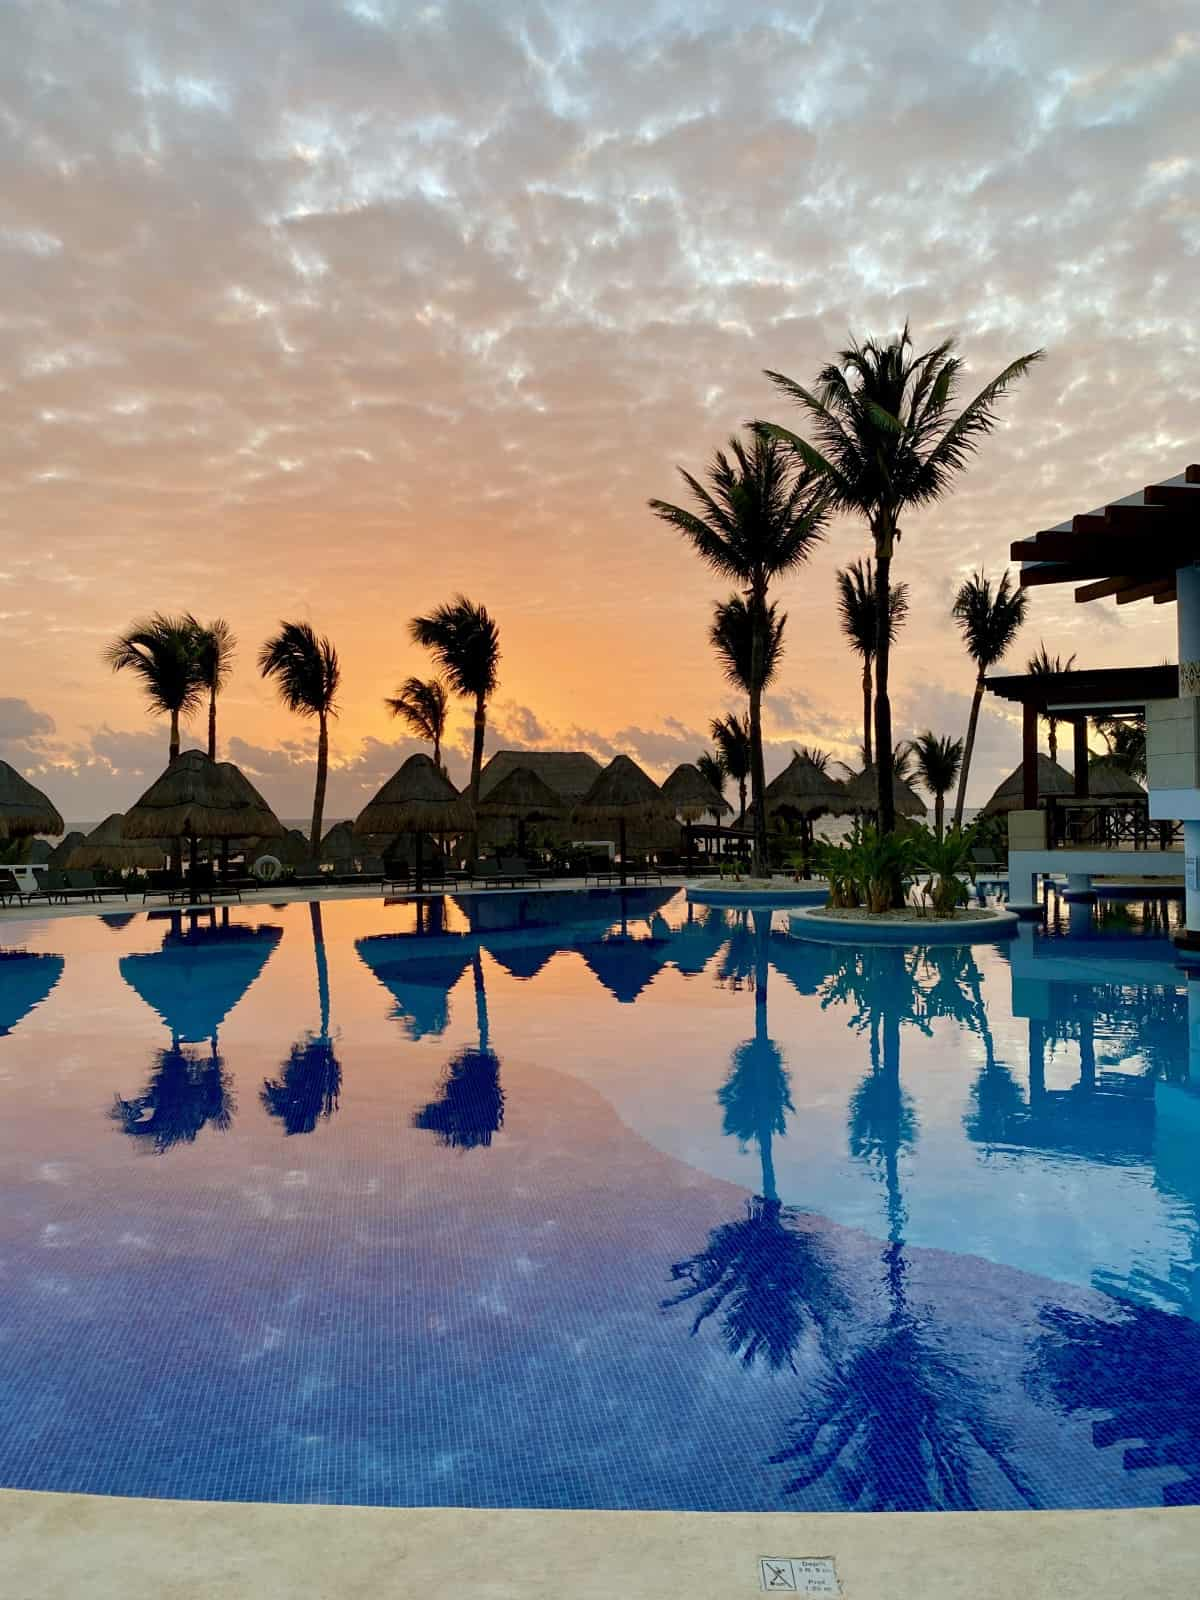 Detailed review of LeBlanc Cancun vs. Excellence Playa Mujeres - sunrise at EPM